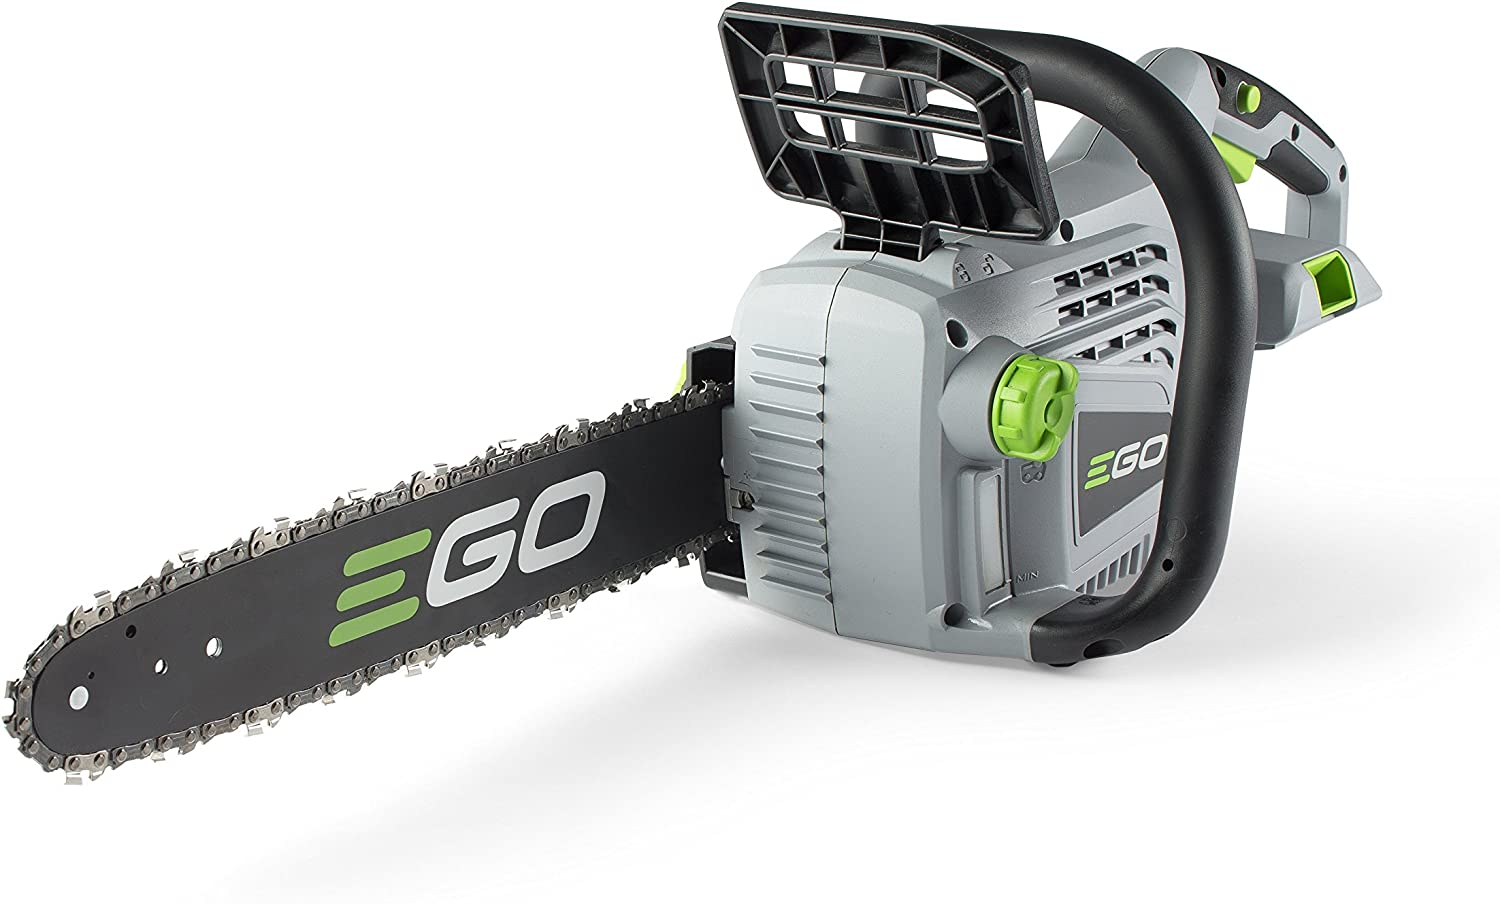 EGO Power+ CS1400 14-Inch Power Chain Saws